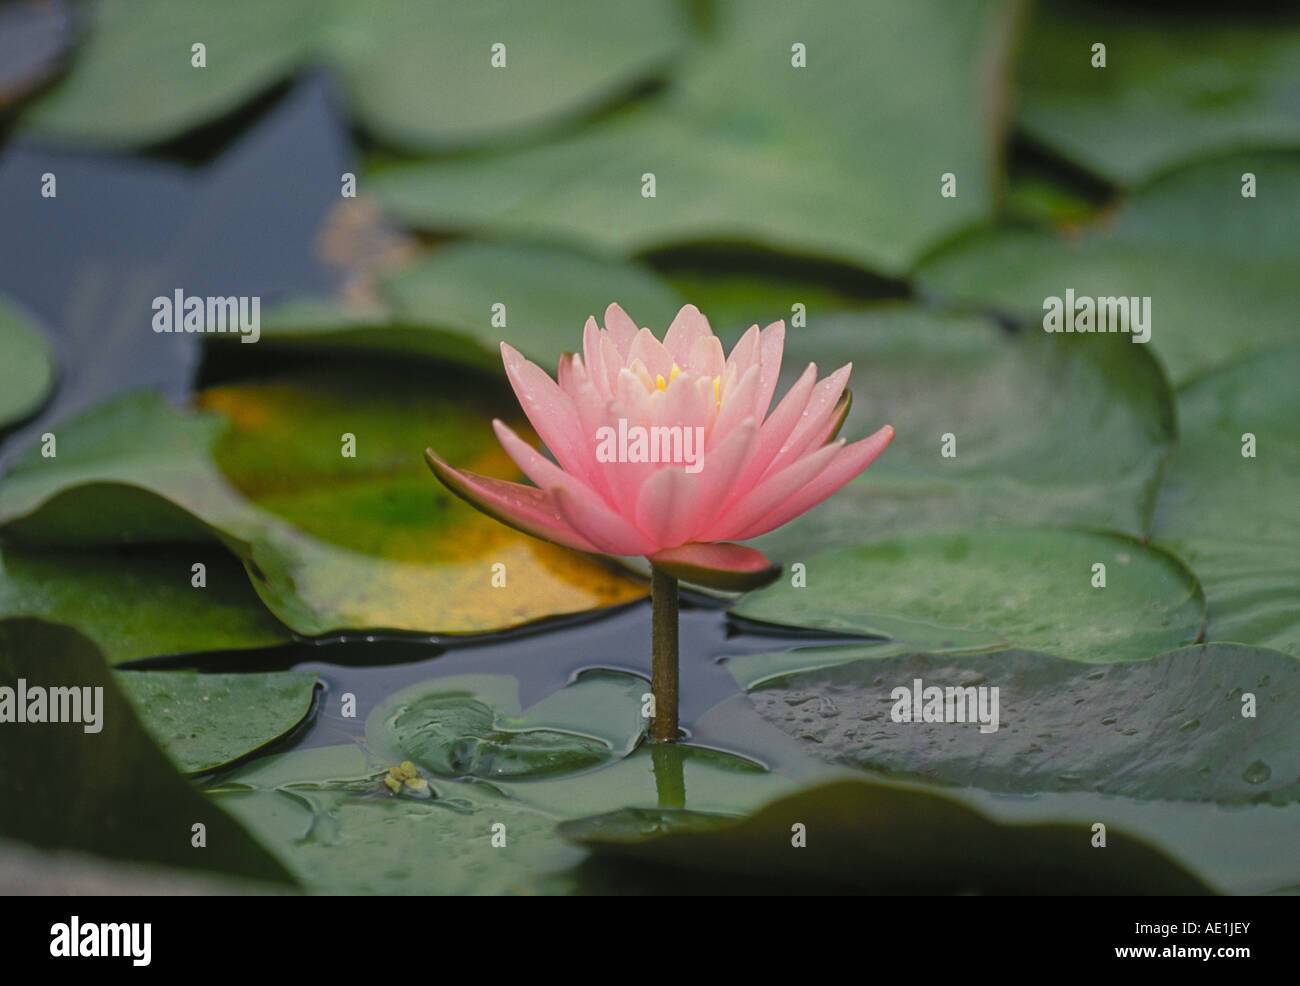 a lotus blossom or water lily growing in a a rain forest pool in, Natural flower